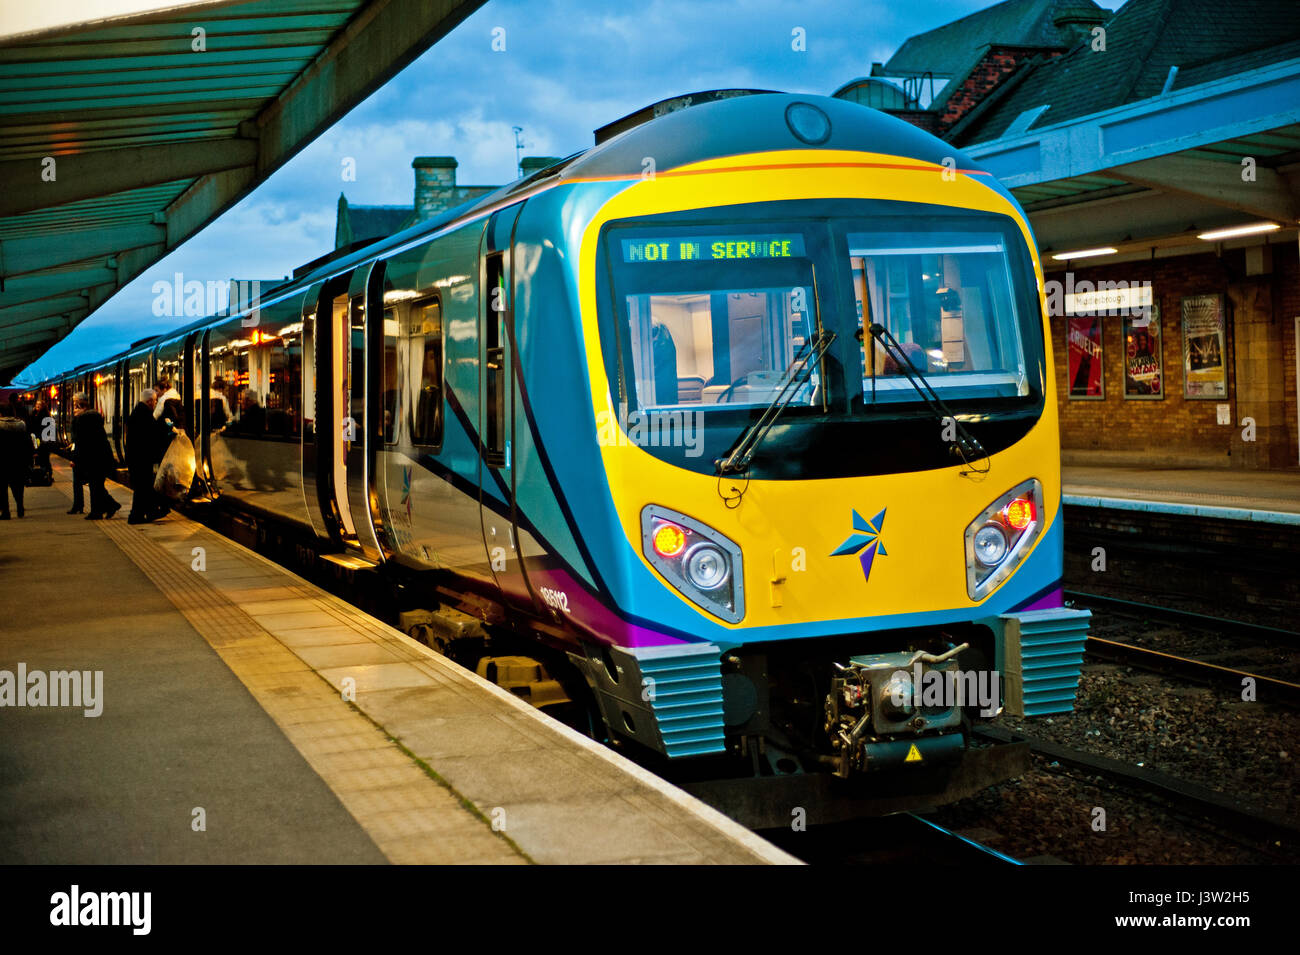 Transpennine train at Middlesbrough in a new livery - Stock Image